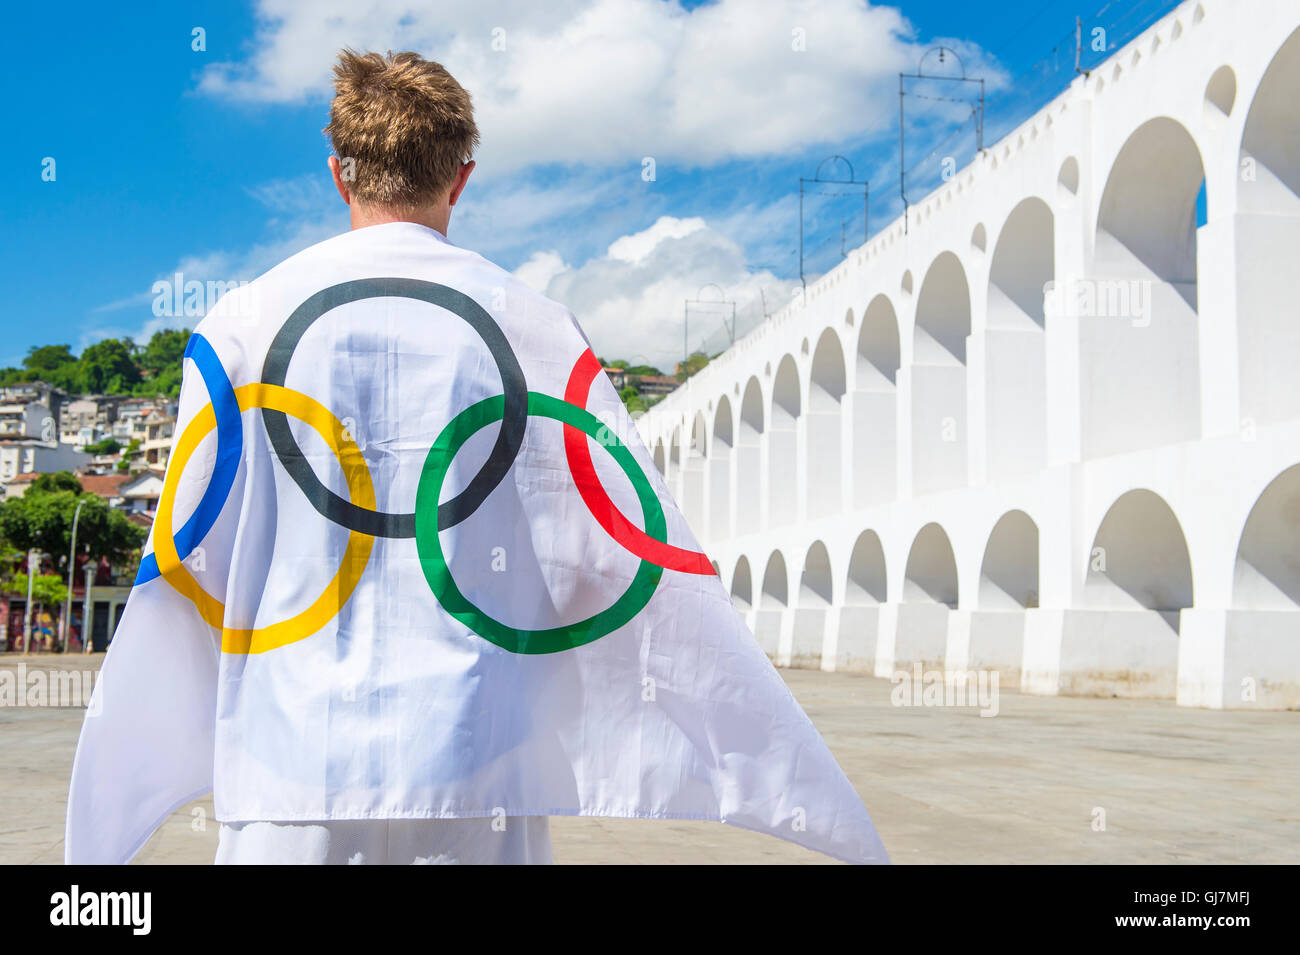 RIO DE JANEIRO - MARCH 06, 2015: Athlete draped with Olympic flag stands outdoors in the plaza at the famous Lapa - Stock Image